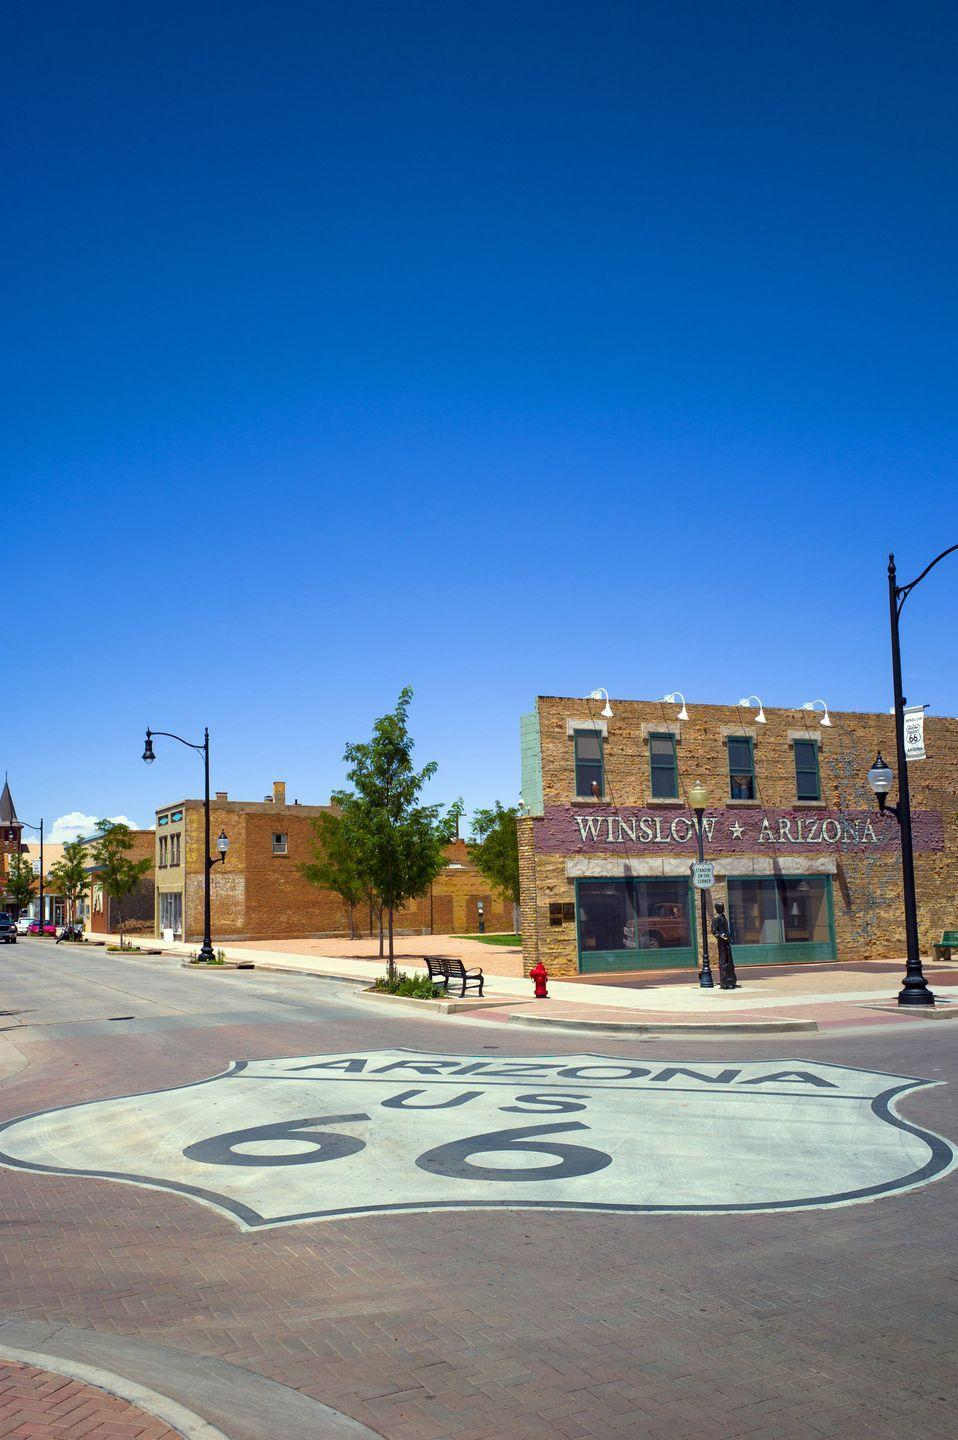 <p>Love the nostalgic feel of any spots along the famed Route 66, and with Winslow, Arizona, you'll get the added bonus of singing the famous Eagles song as you stroll by. </p>